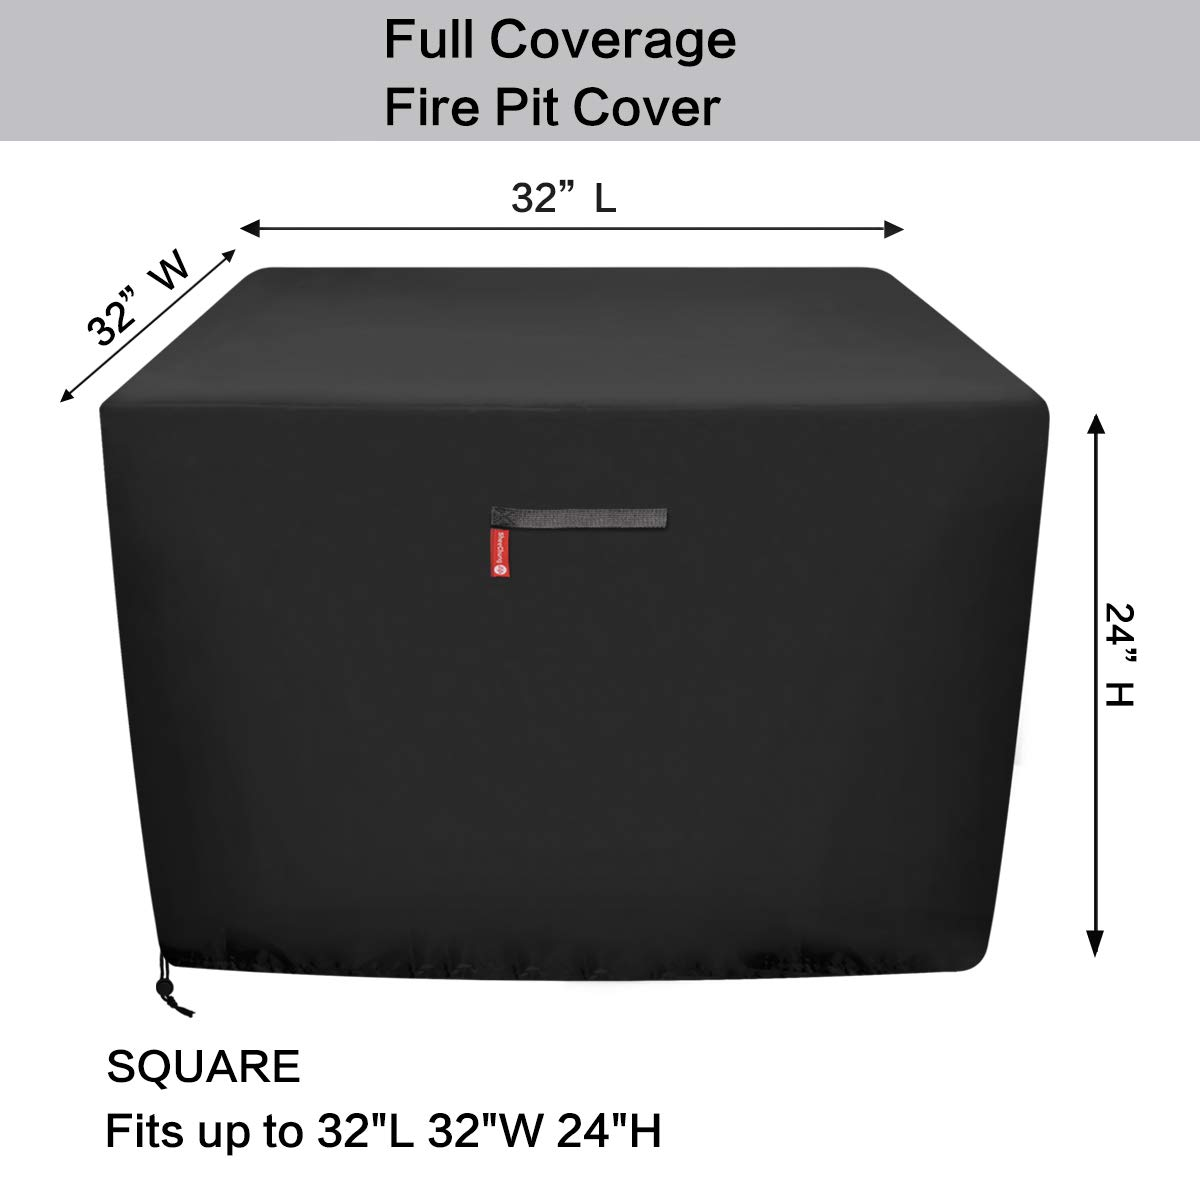 SheeChung Gas Fire Pit Cover Square Premium Patio Outdoor Cover Durable and 100/% Waterproof,Fits for 30 inch,31 inch,32 inch Fire Pit//Table Cover,Black Square 32 L x 32 W x 24 H